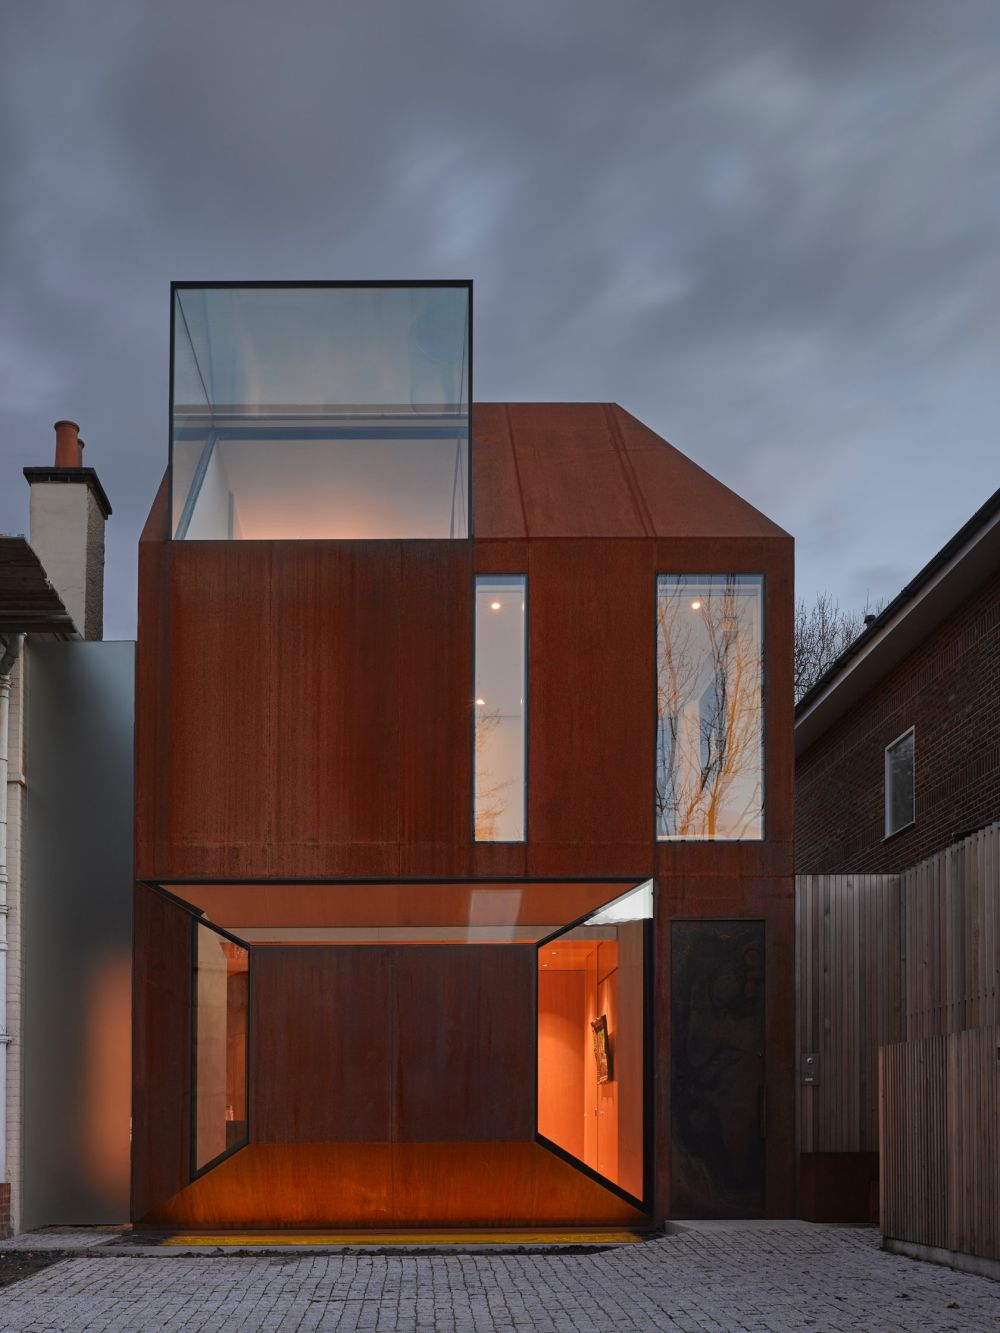 1570520646 989 the wonderful influence of corten steel in architecture - The Wonderful Influence Of Corten Steel In Architecture